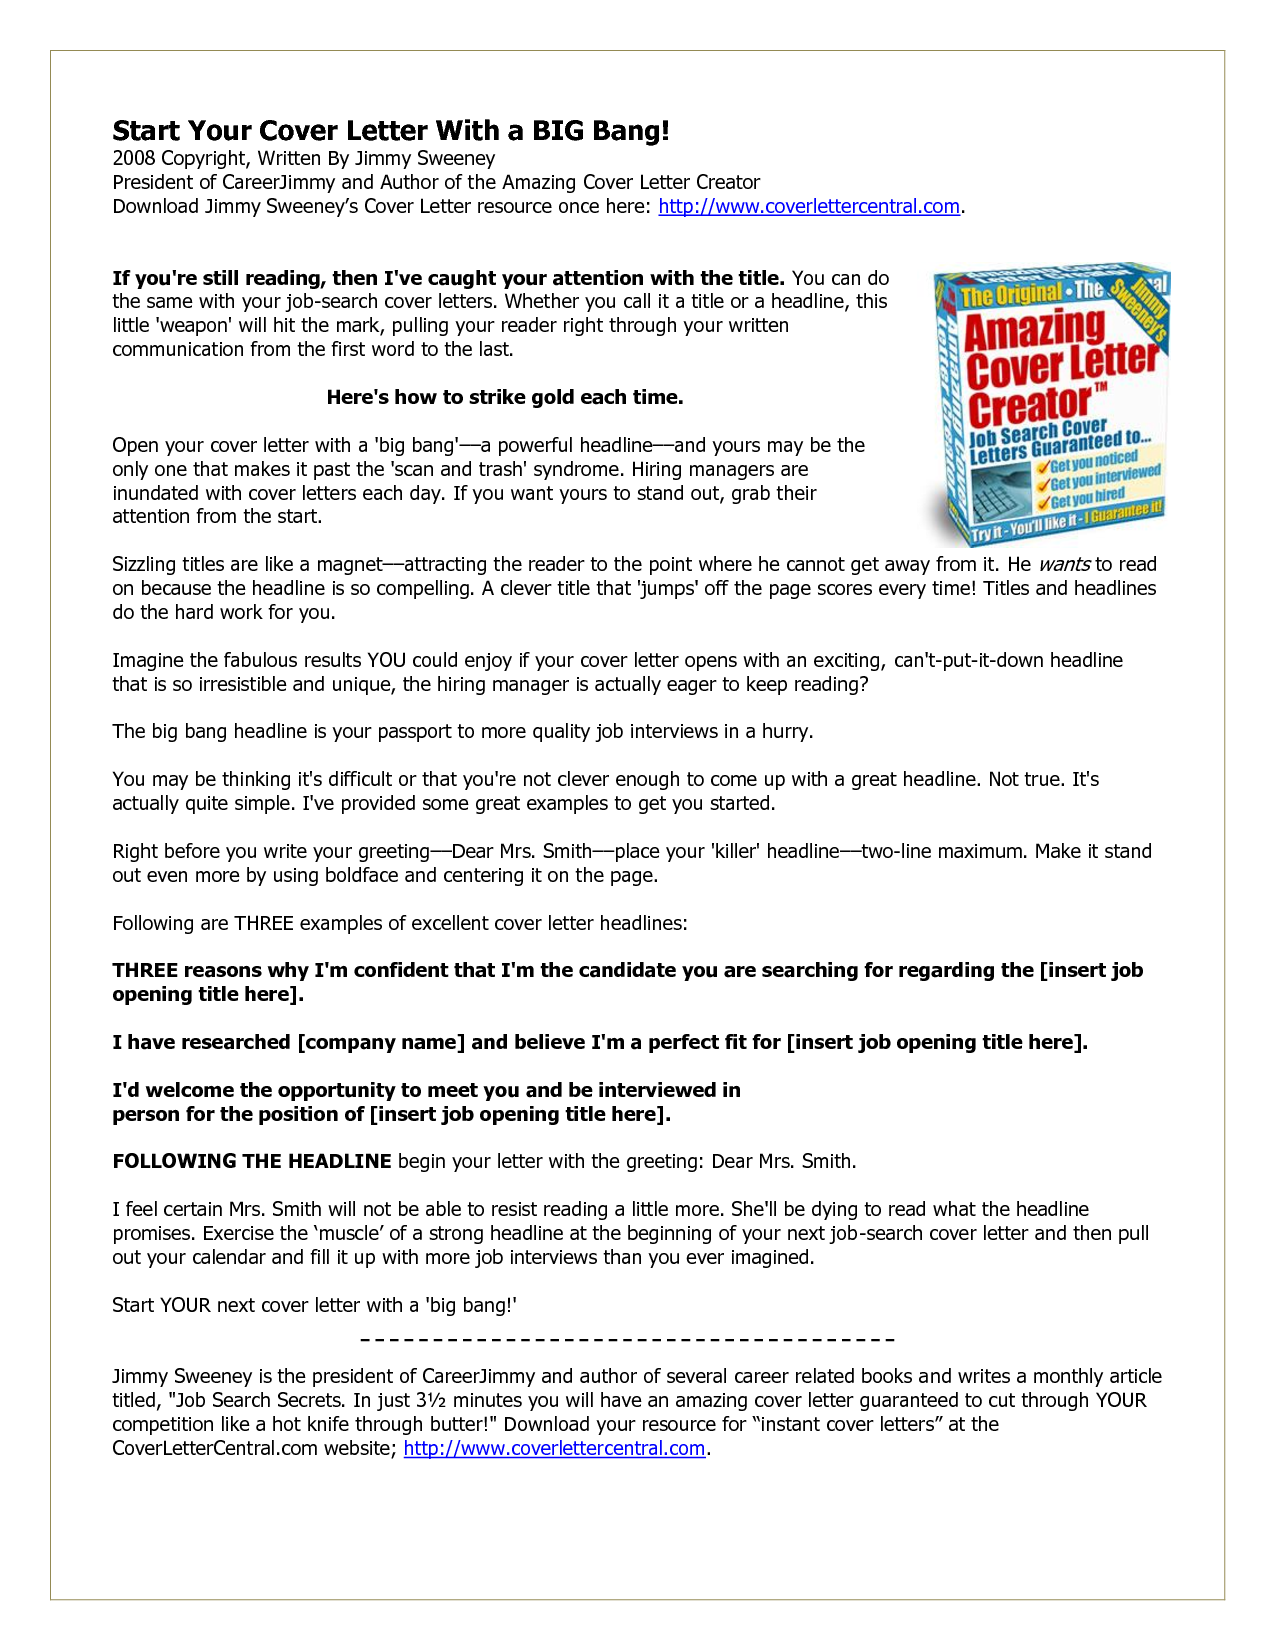 cover-sample Do You Know How to Get Amazing Cover Letters?